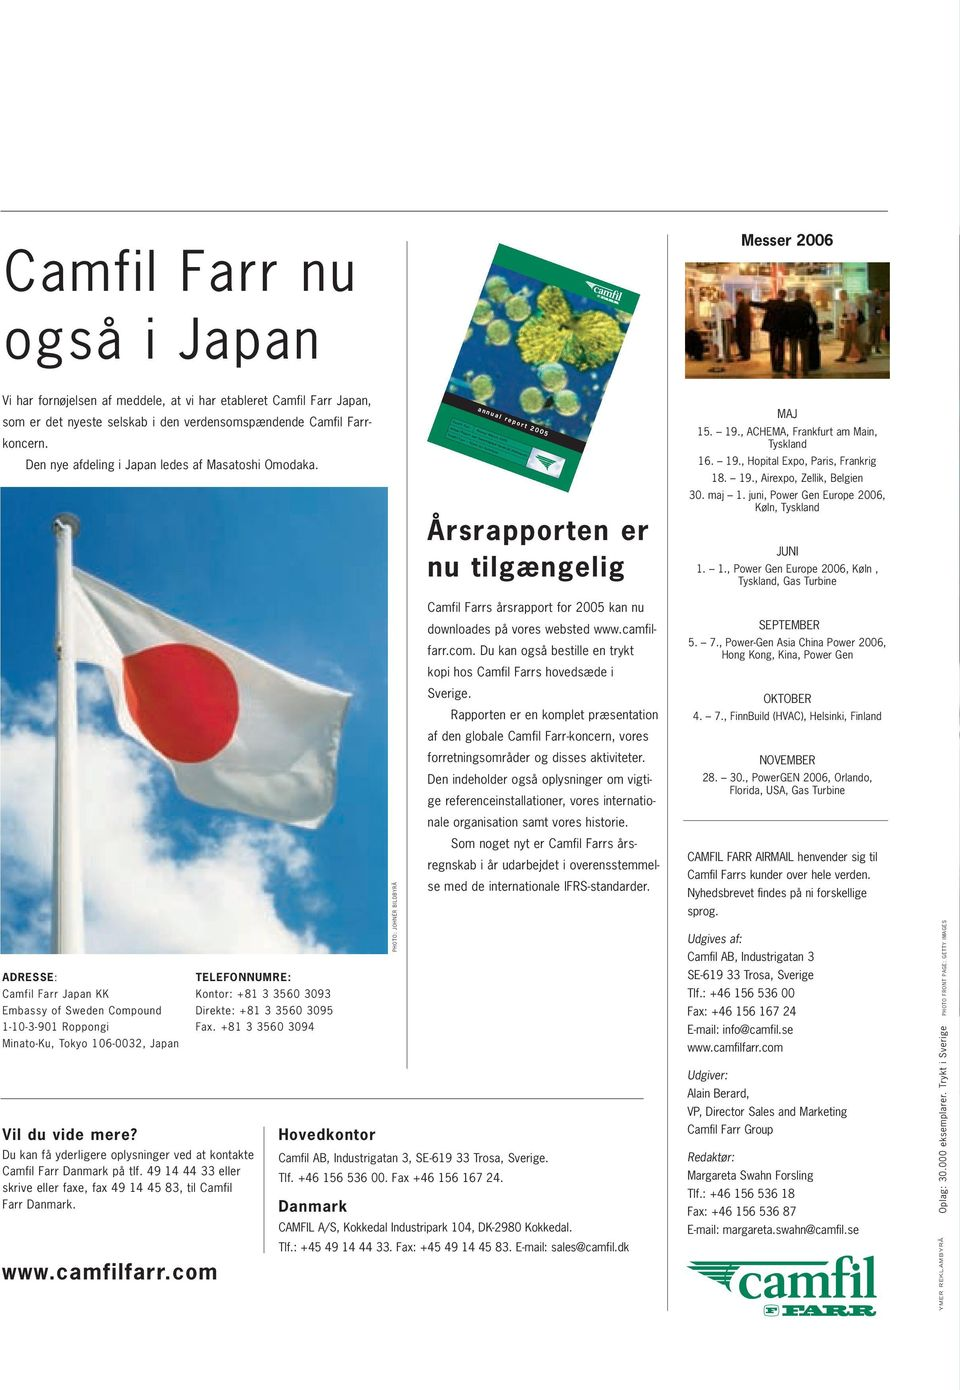 annual report 2005 Camfil Farr Annual Report 2005 Annual Report and Consolidated Financial Statements Camfil Farr Clean Air Solutions Årsrapporten er nu tilgængelig MAJ 15. 19.